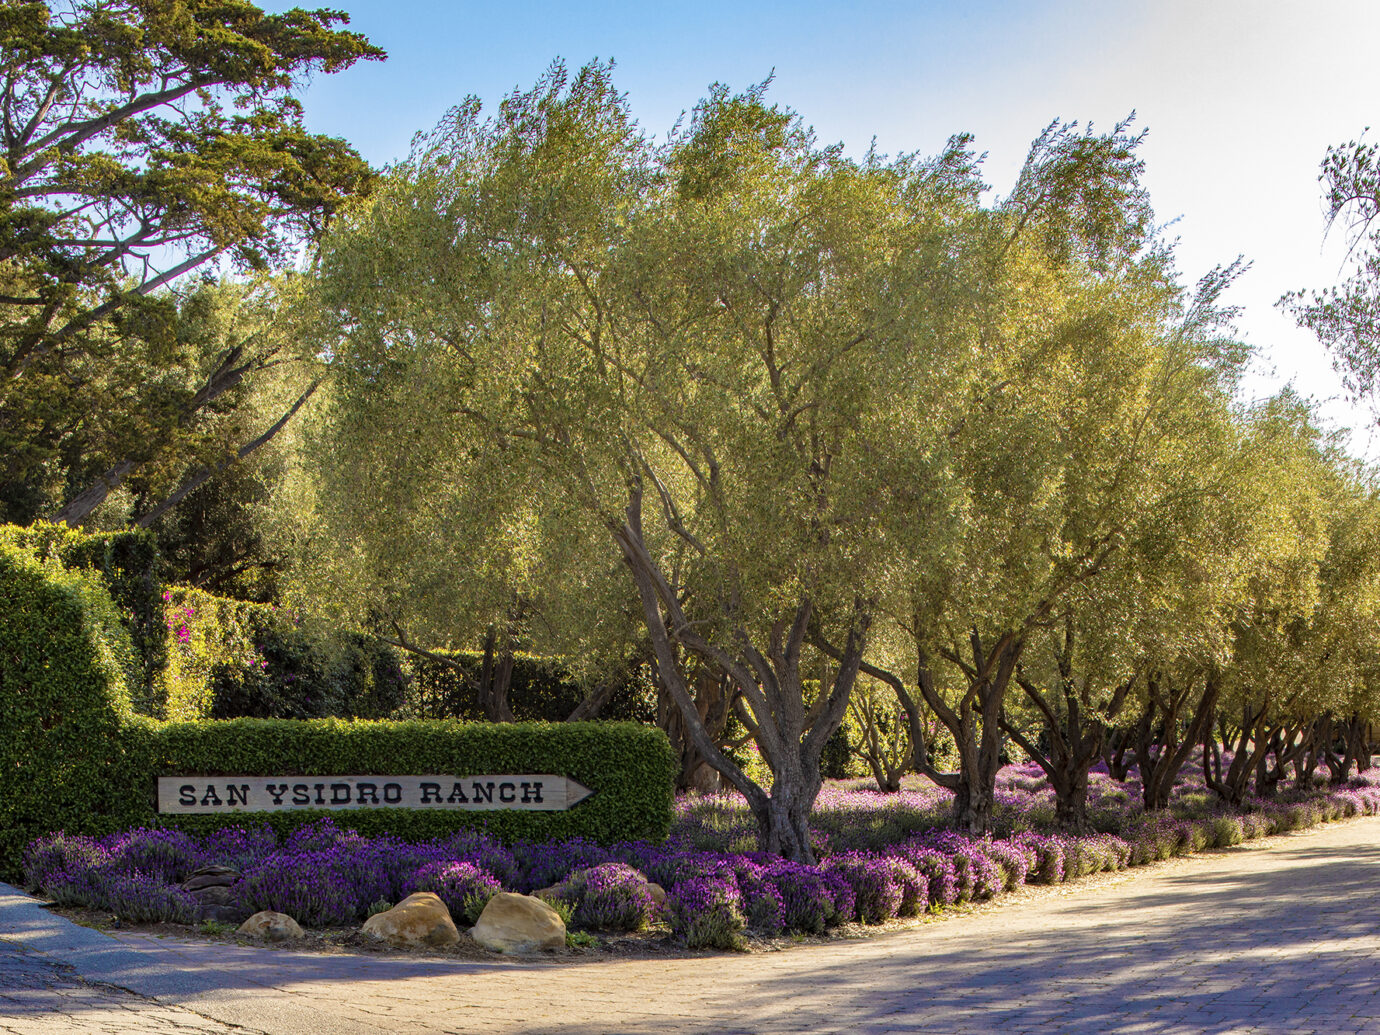 Entrance to San Ysidro Ranch